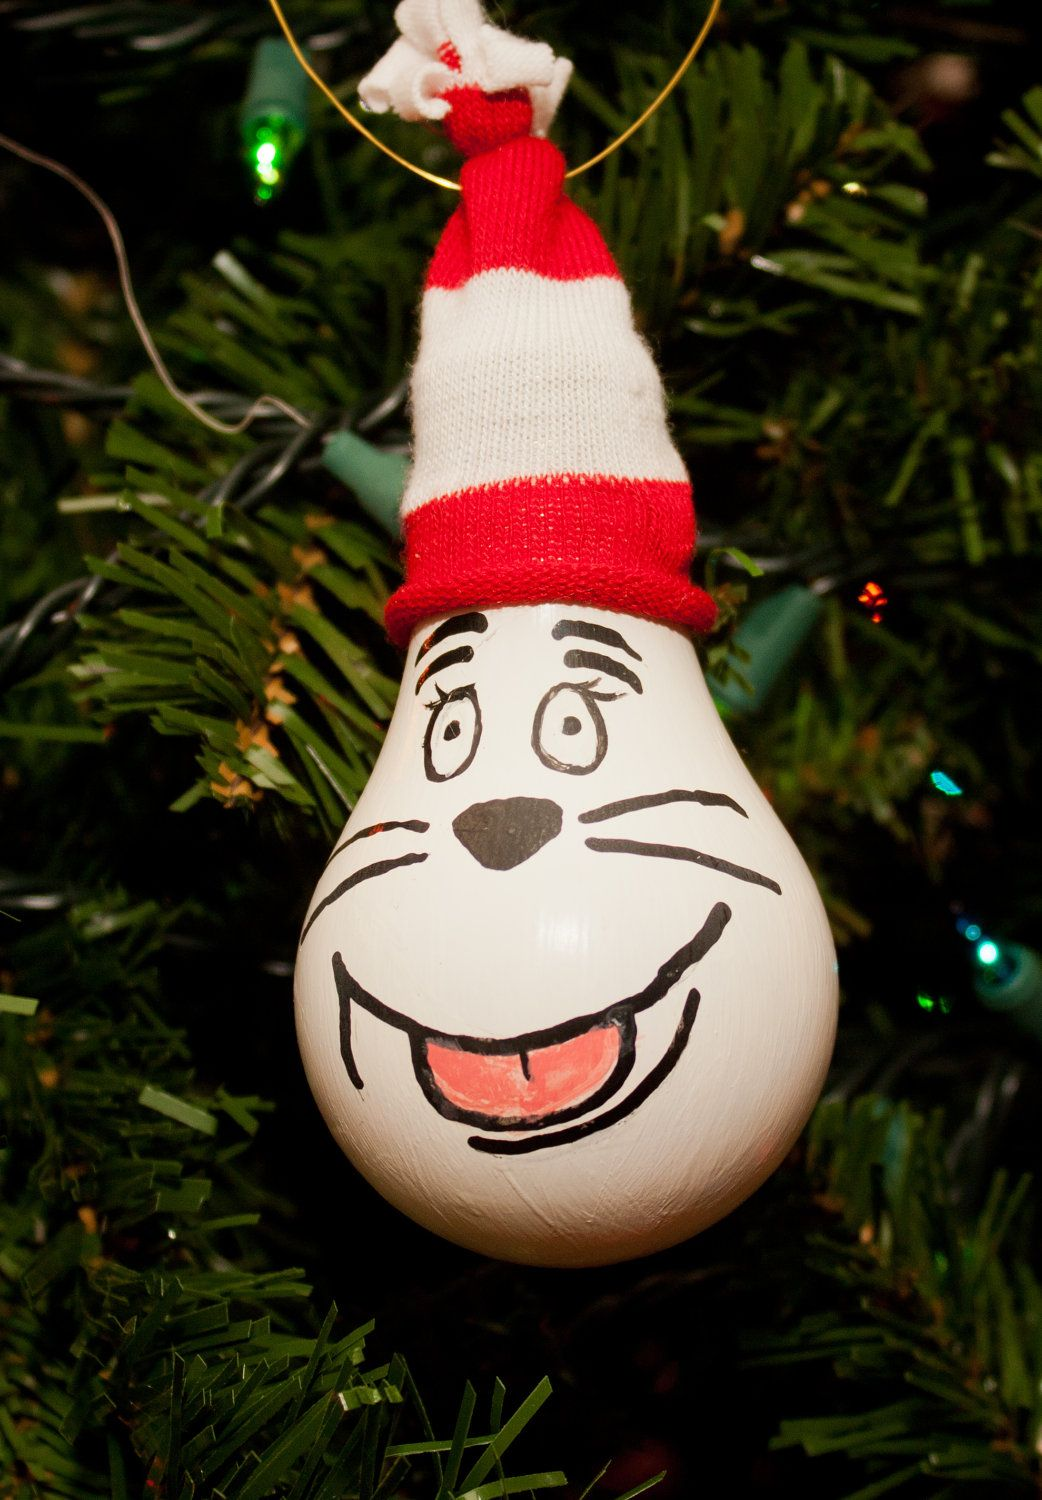 Cat In The Hat Ornament Bulb 5 00 Via Etsy Christmas Ornament Crafts Christmas Cards Handmade Christmas Crafts